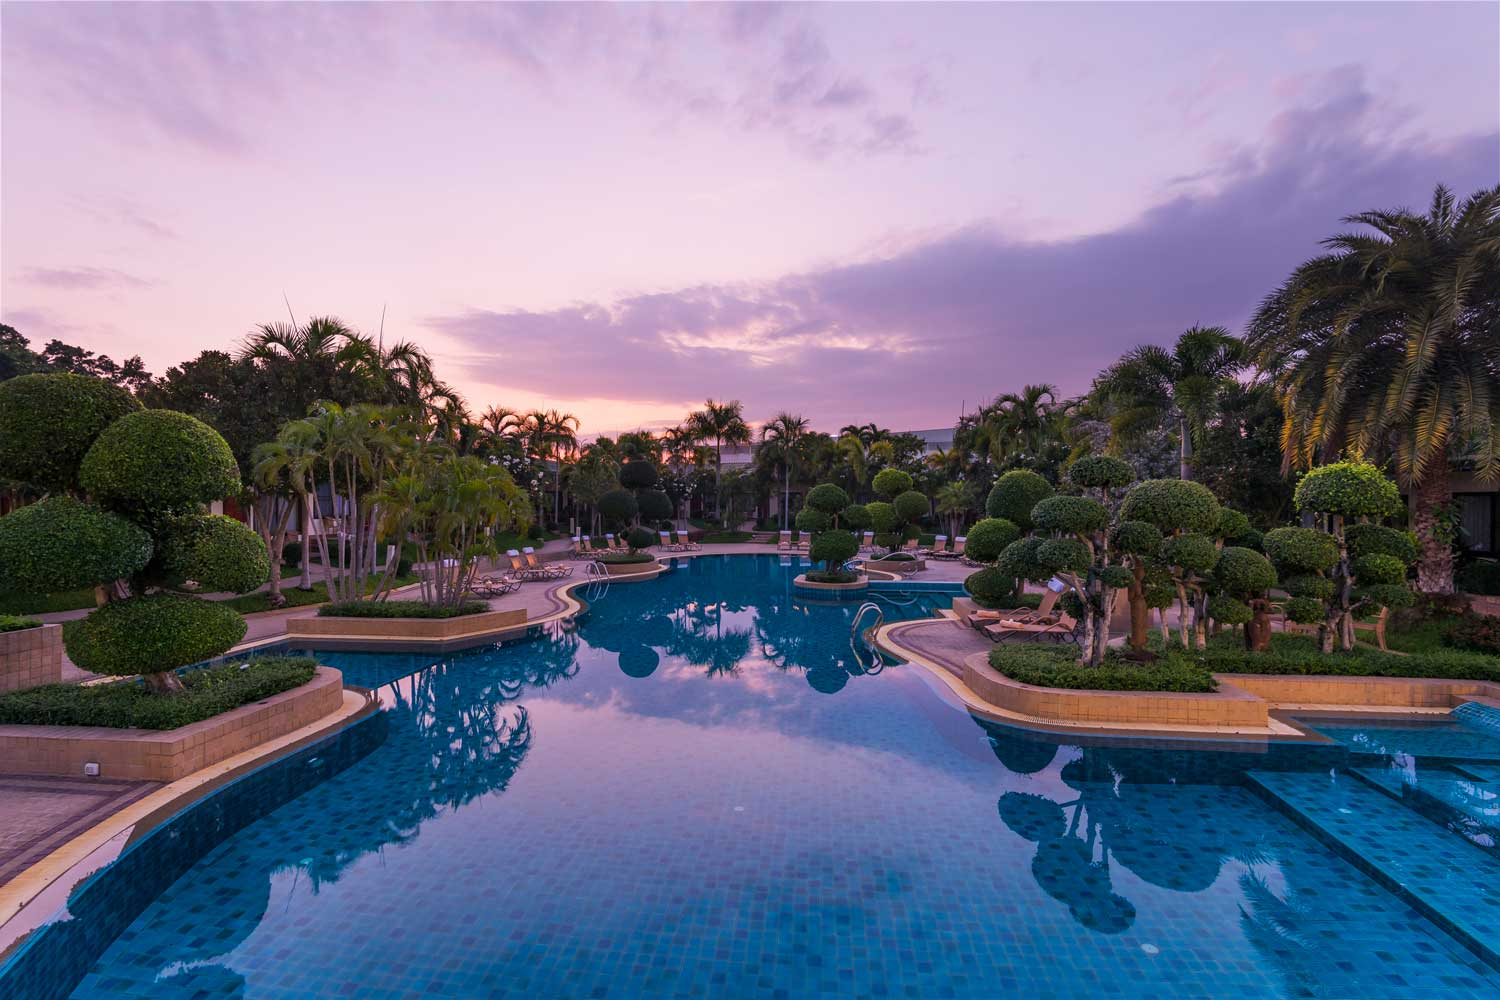 Sunrise over the tropical garden and the large swimming pool at Thai Garden Resort in Pattaya, Thailand